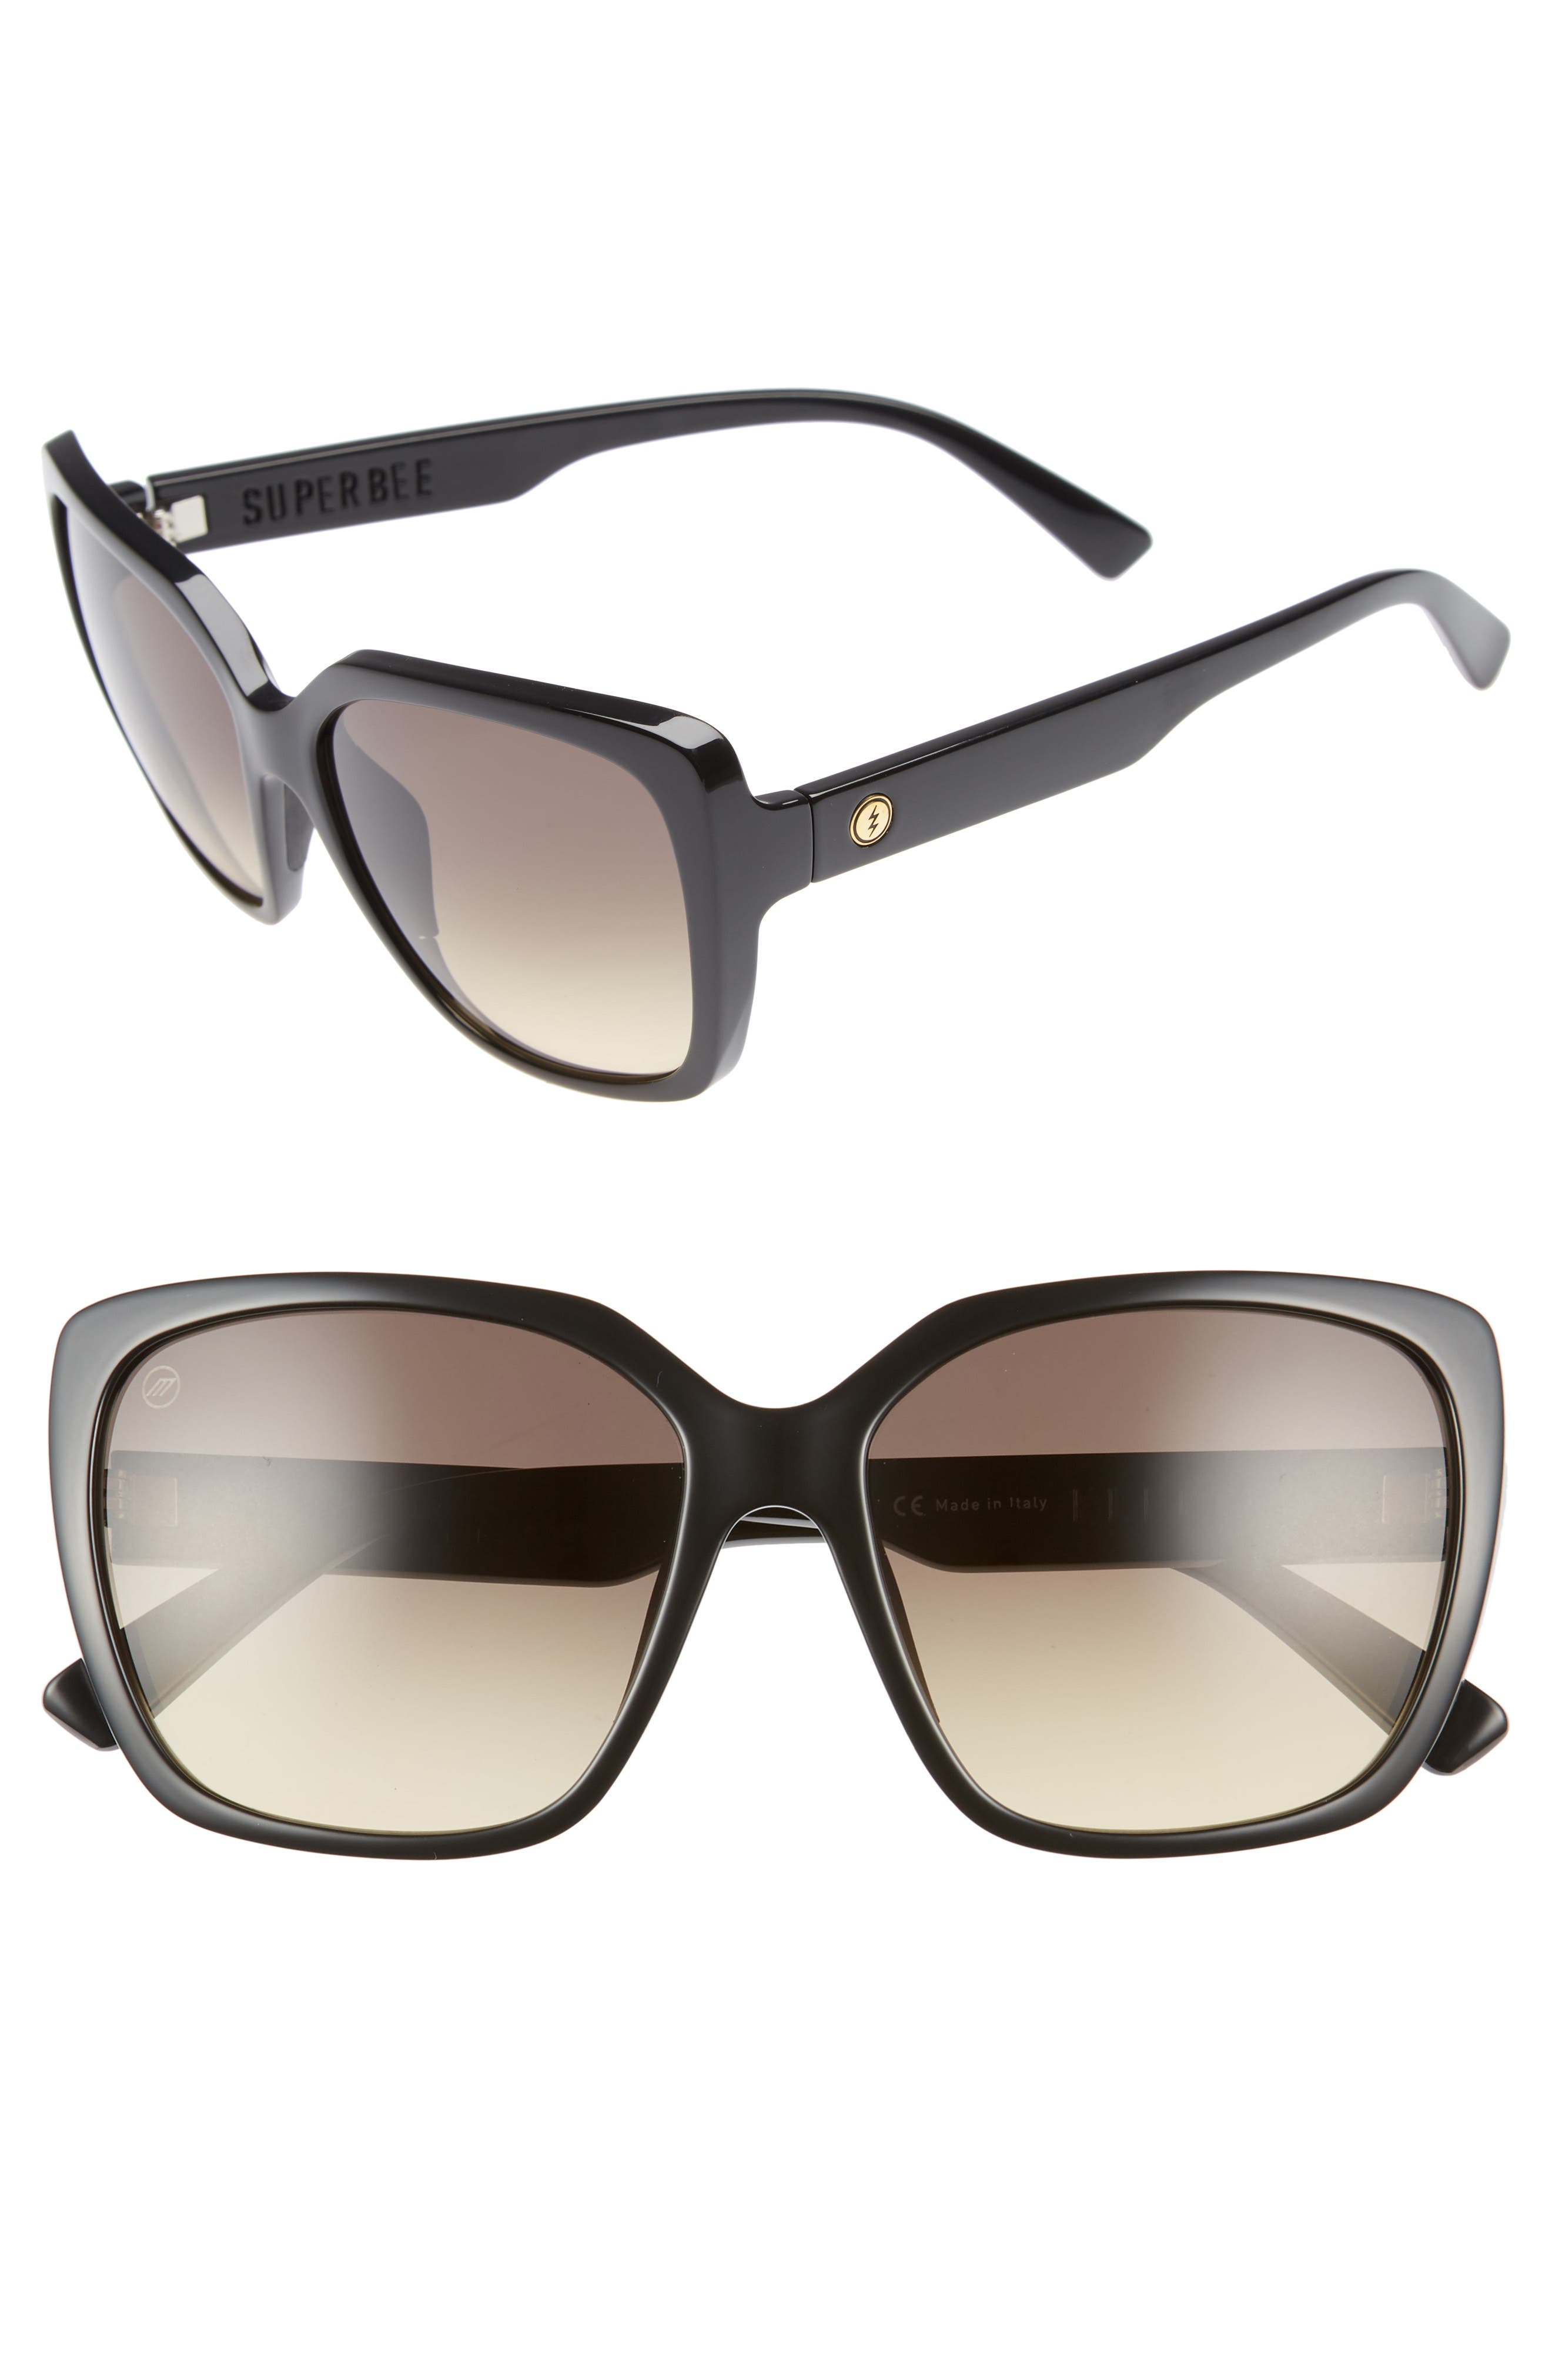 Super Bee 56mm Square Sunglasses,                             Main thumbnail 1, color,                             Gloss Black/ Black Gradient